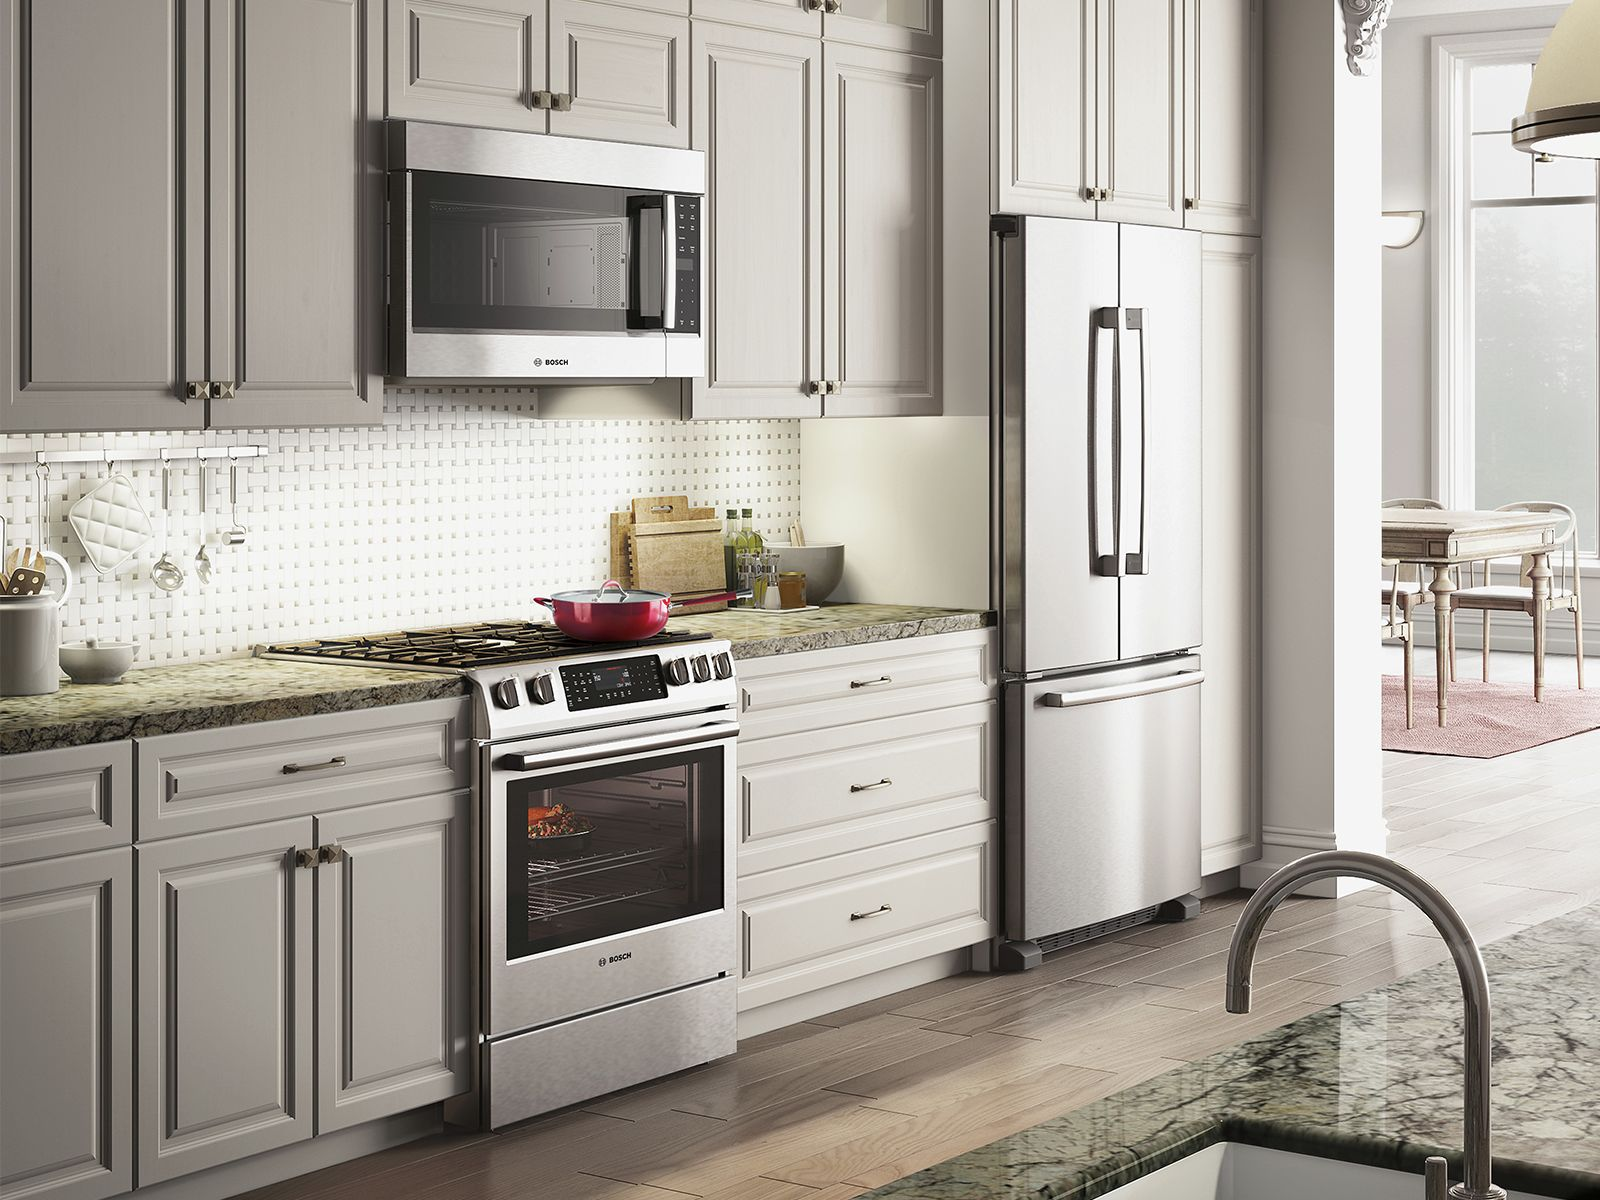 bosch kitchen appliances renovation los angeles arizona wholesale supply surprisingly simple solutions